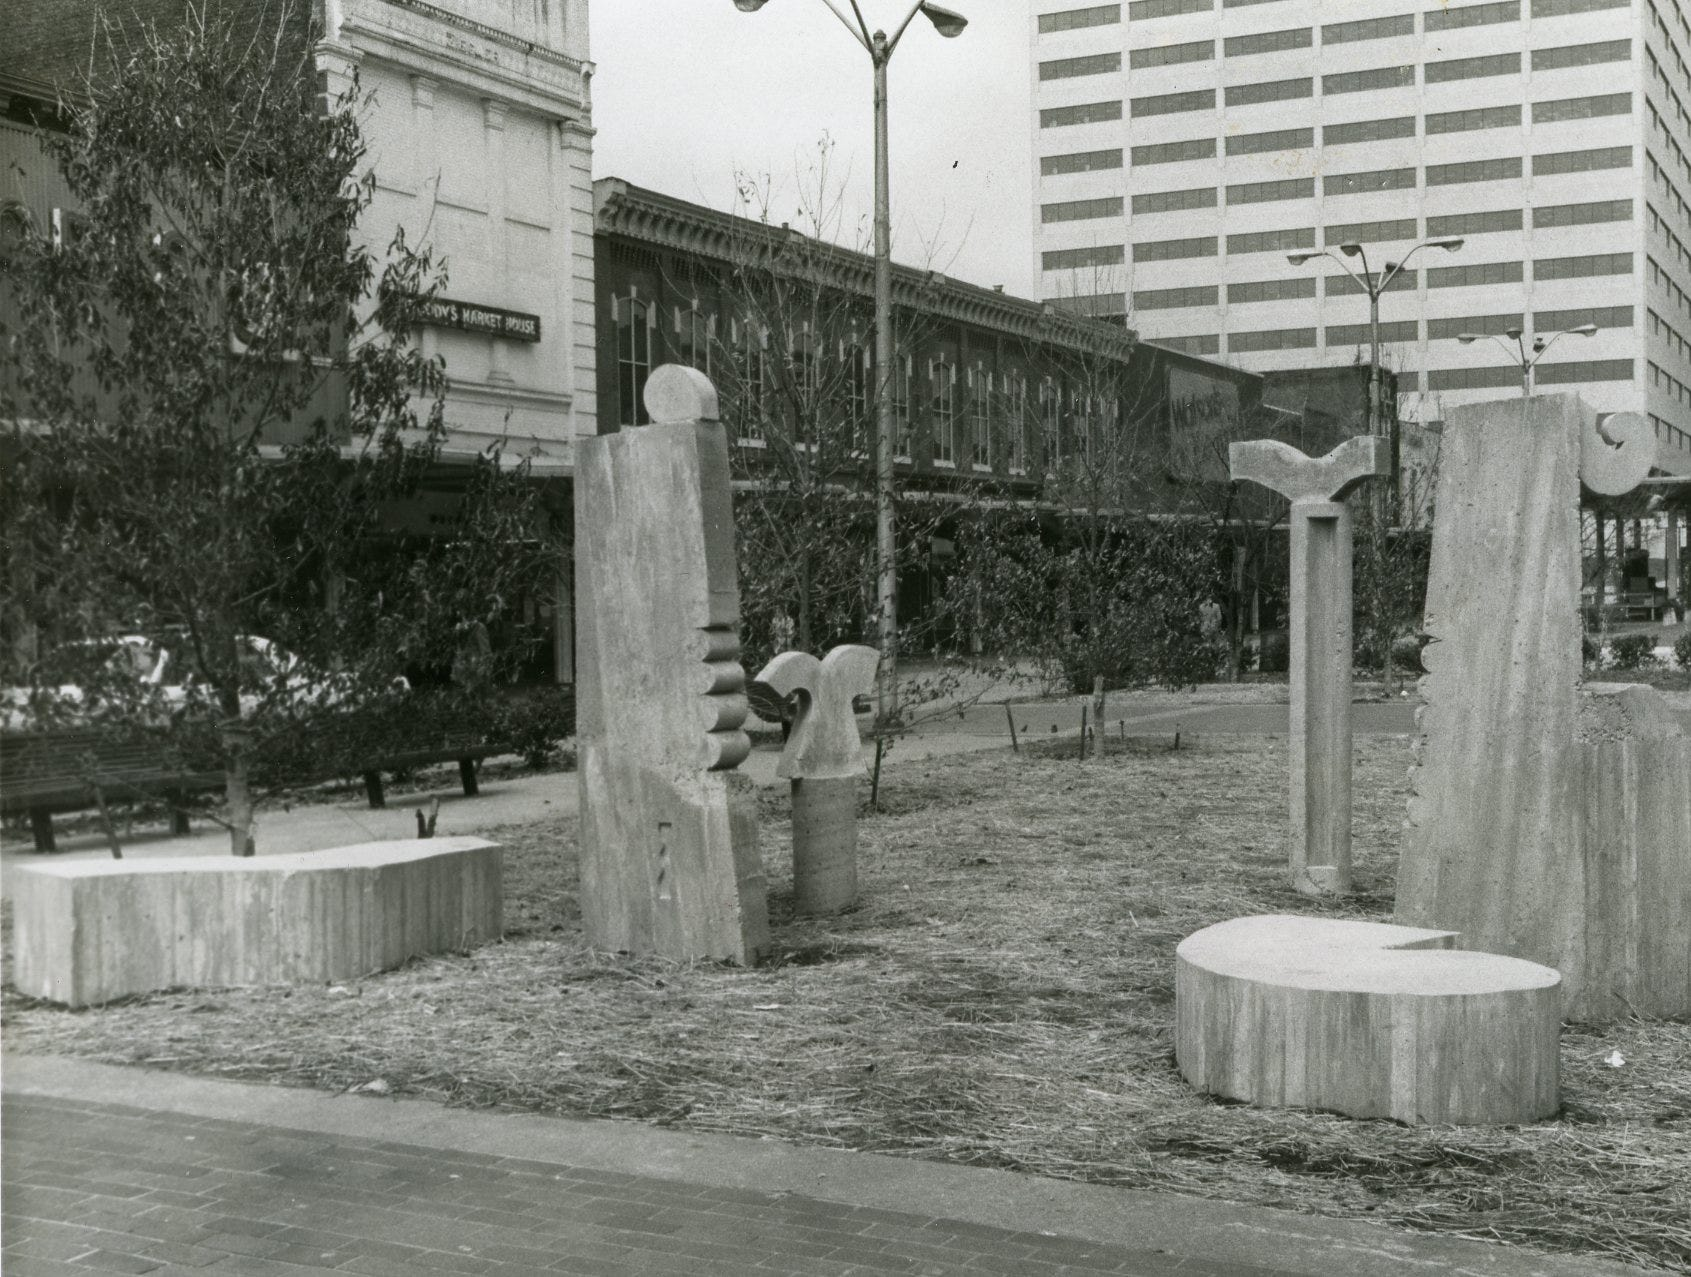 Statues on Market Square Mall, April, 1979.